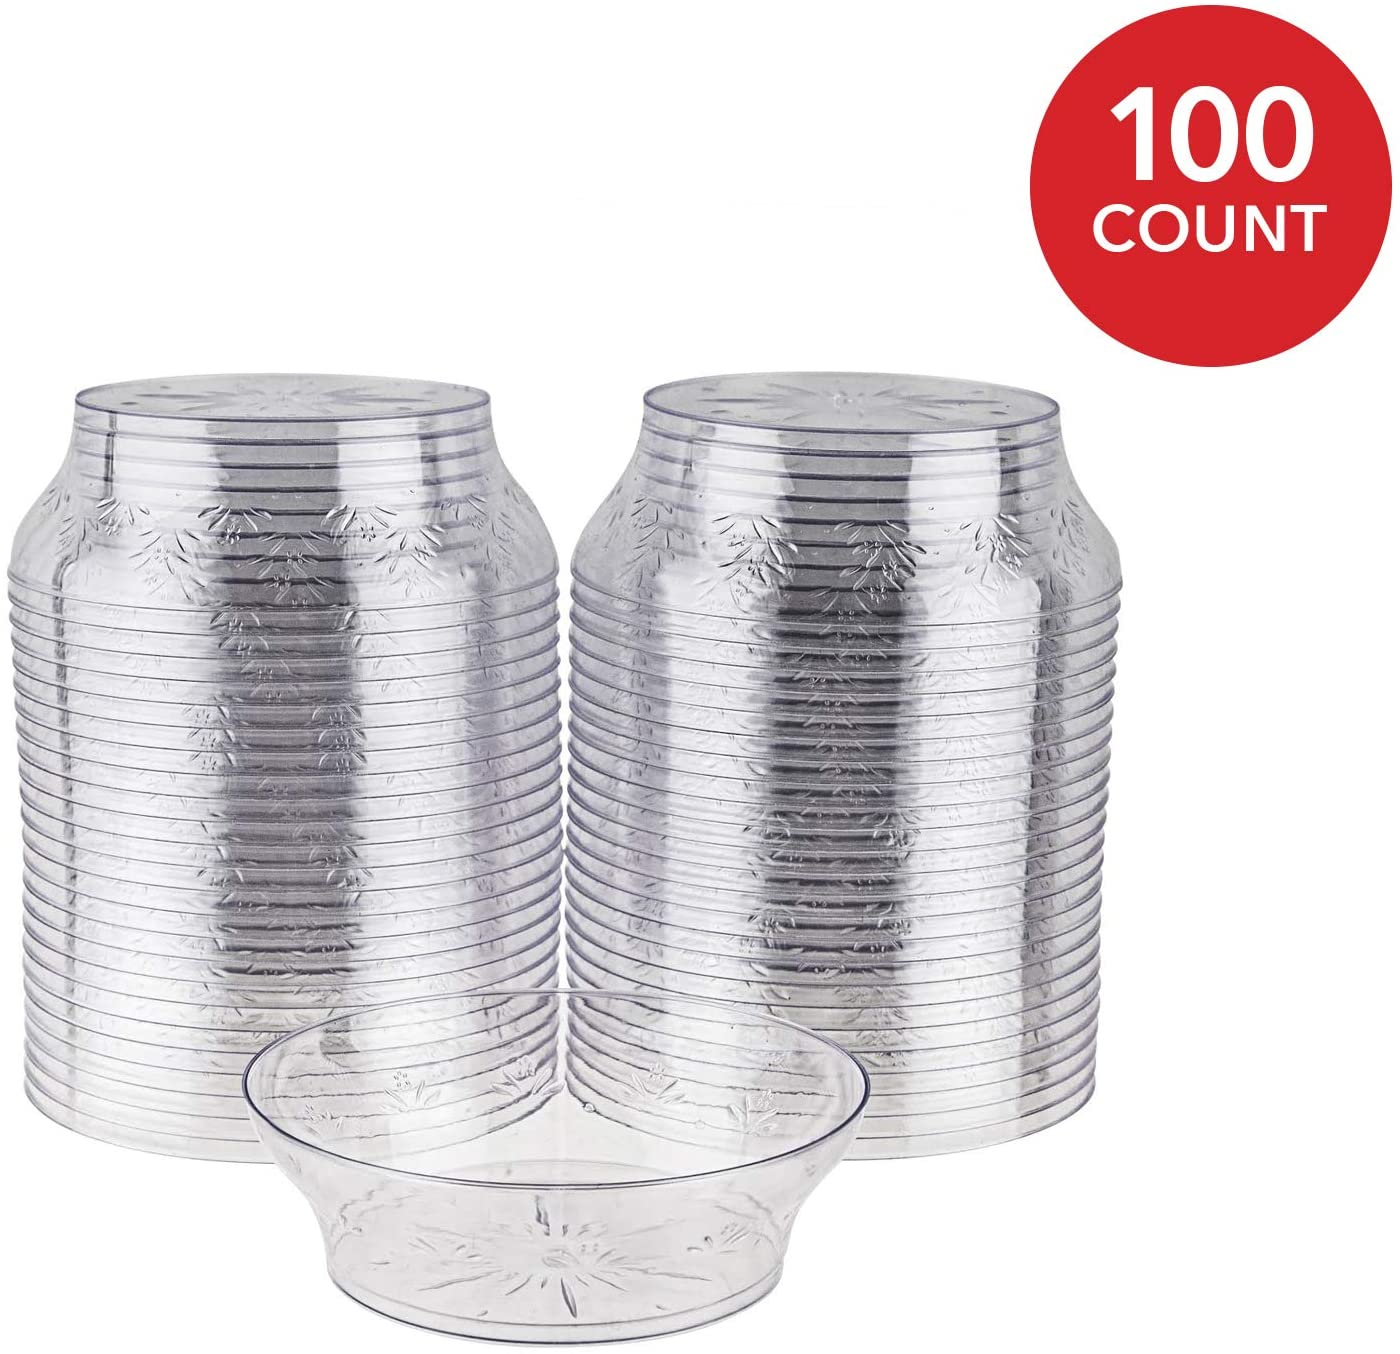 Ice Cream Cups (100 Count) 10 Oz Clear Plastic Dessert Bowls with Floral Design, Disposable Party Cups for Dessert, Ice Cream Sundae, Candy, Salsa - Small Serving Bowls, 10 Ounce